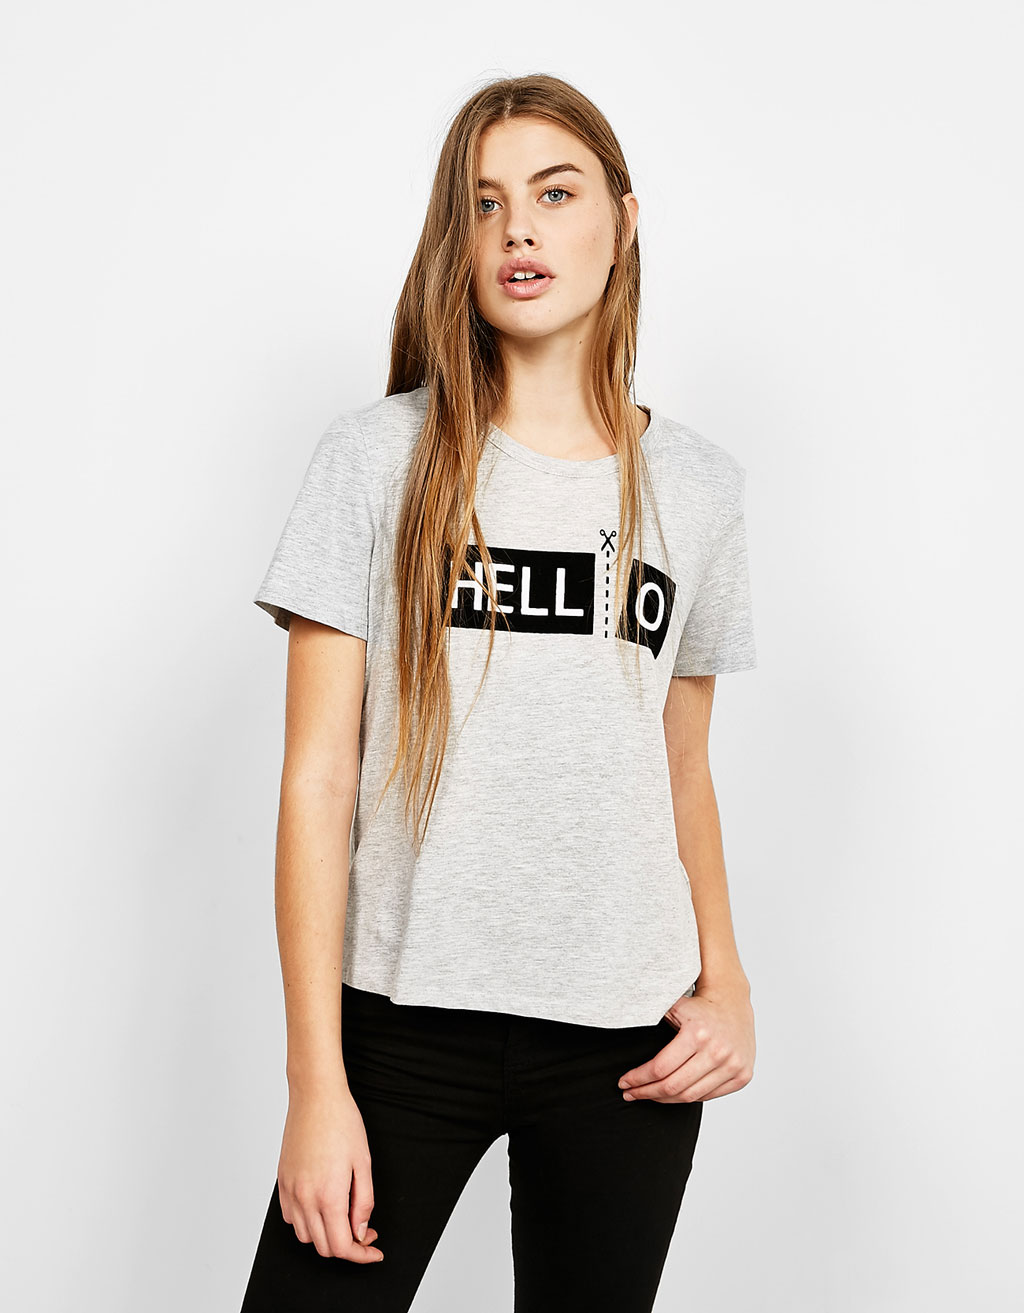 Camiseta estampada HELL-O